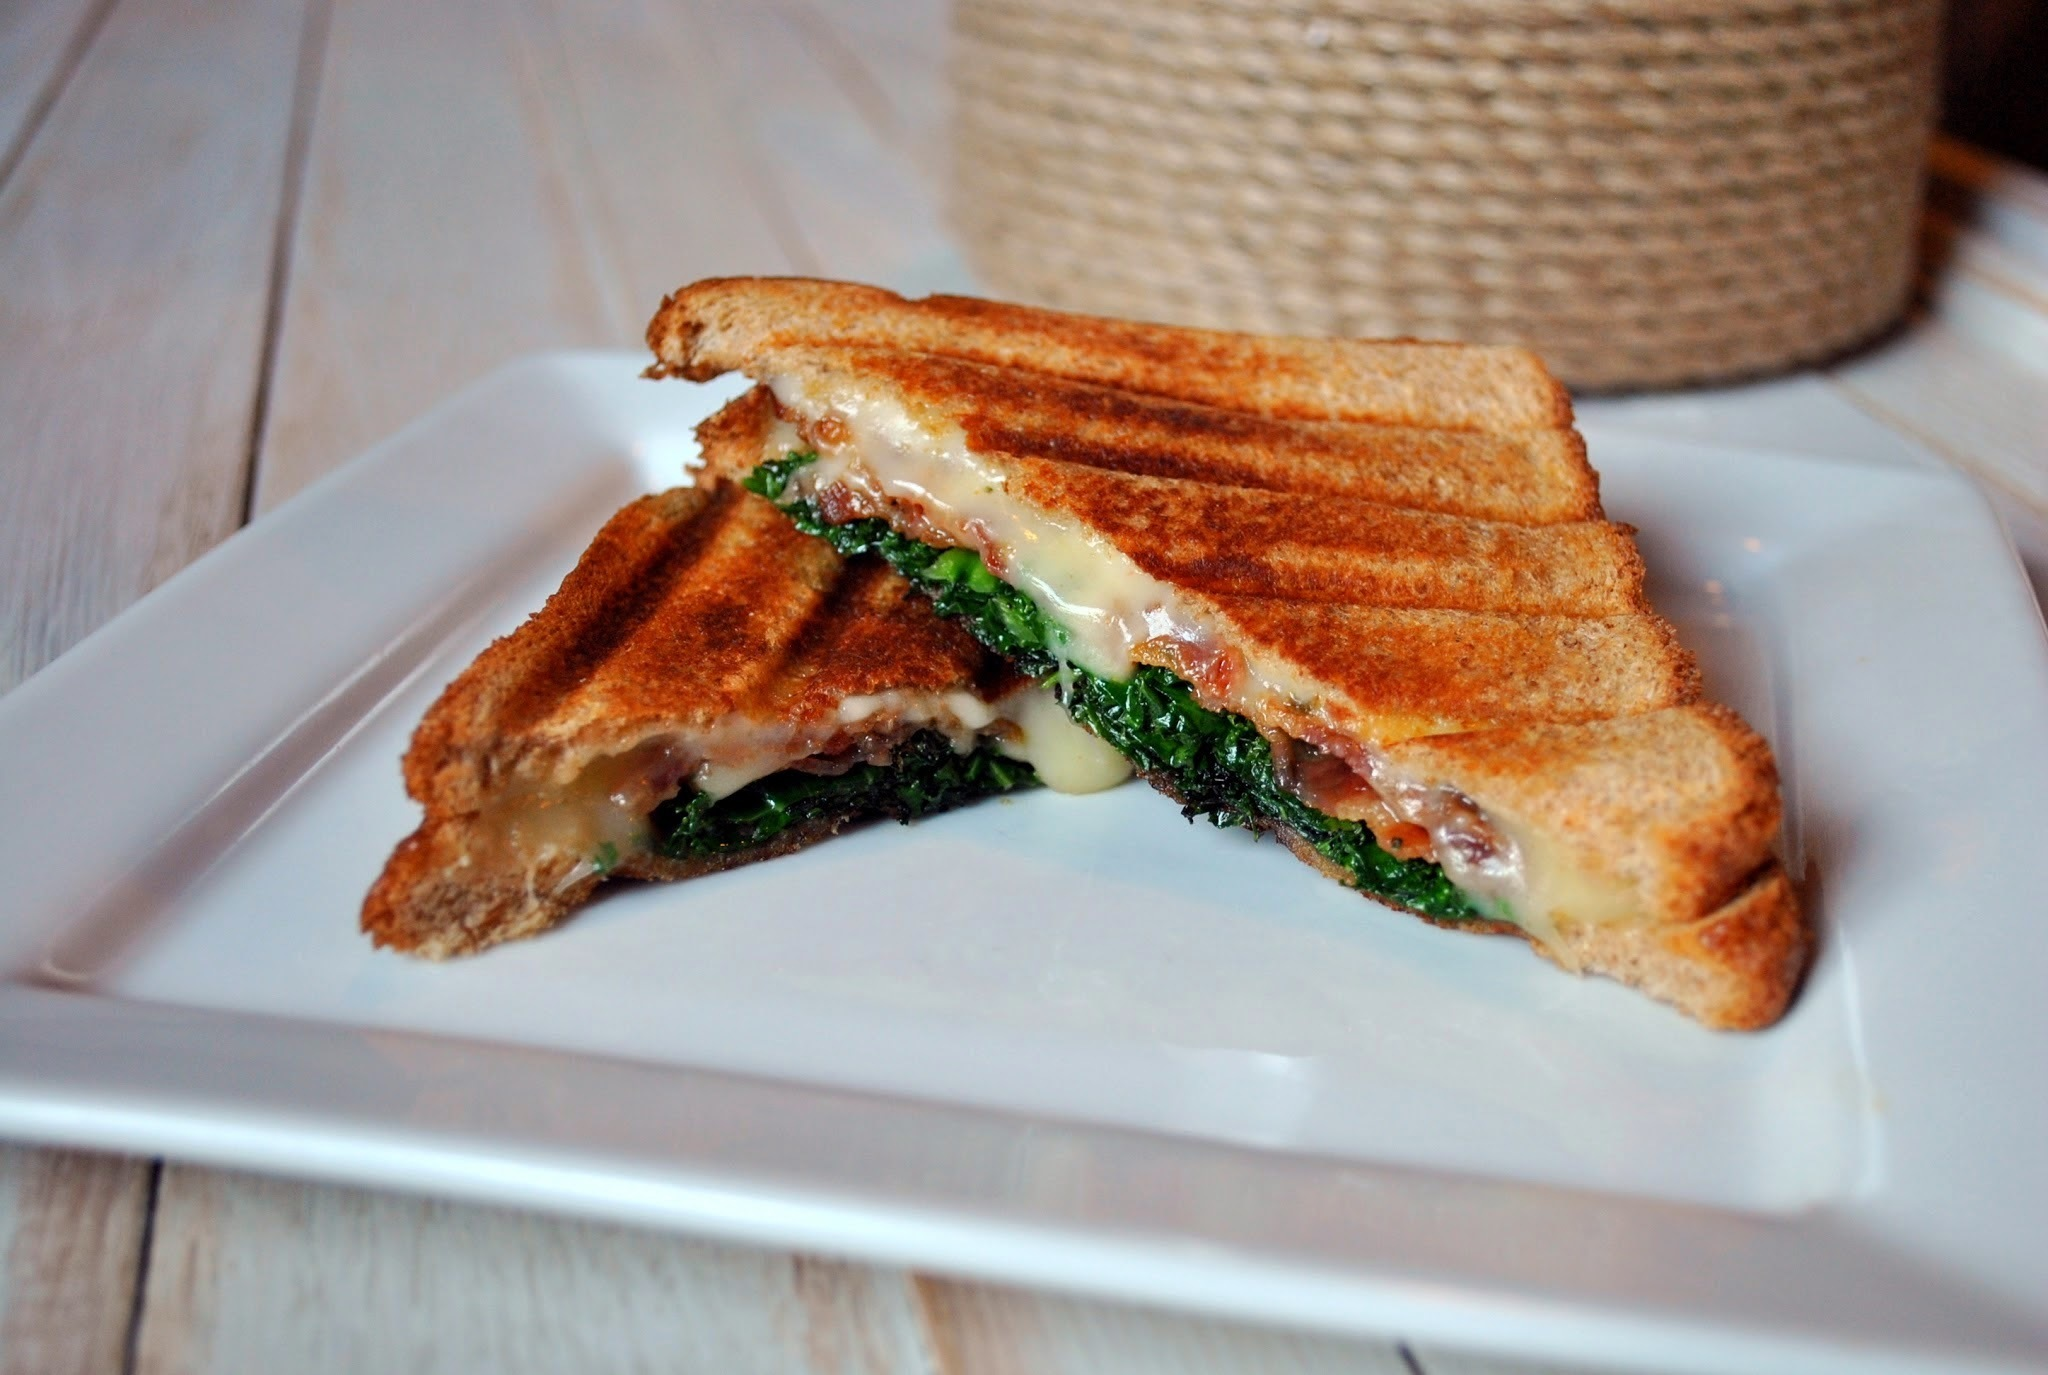 Bacon, Kale & Pepper Jack Cheese Panini